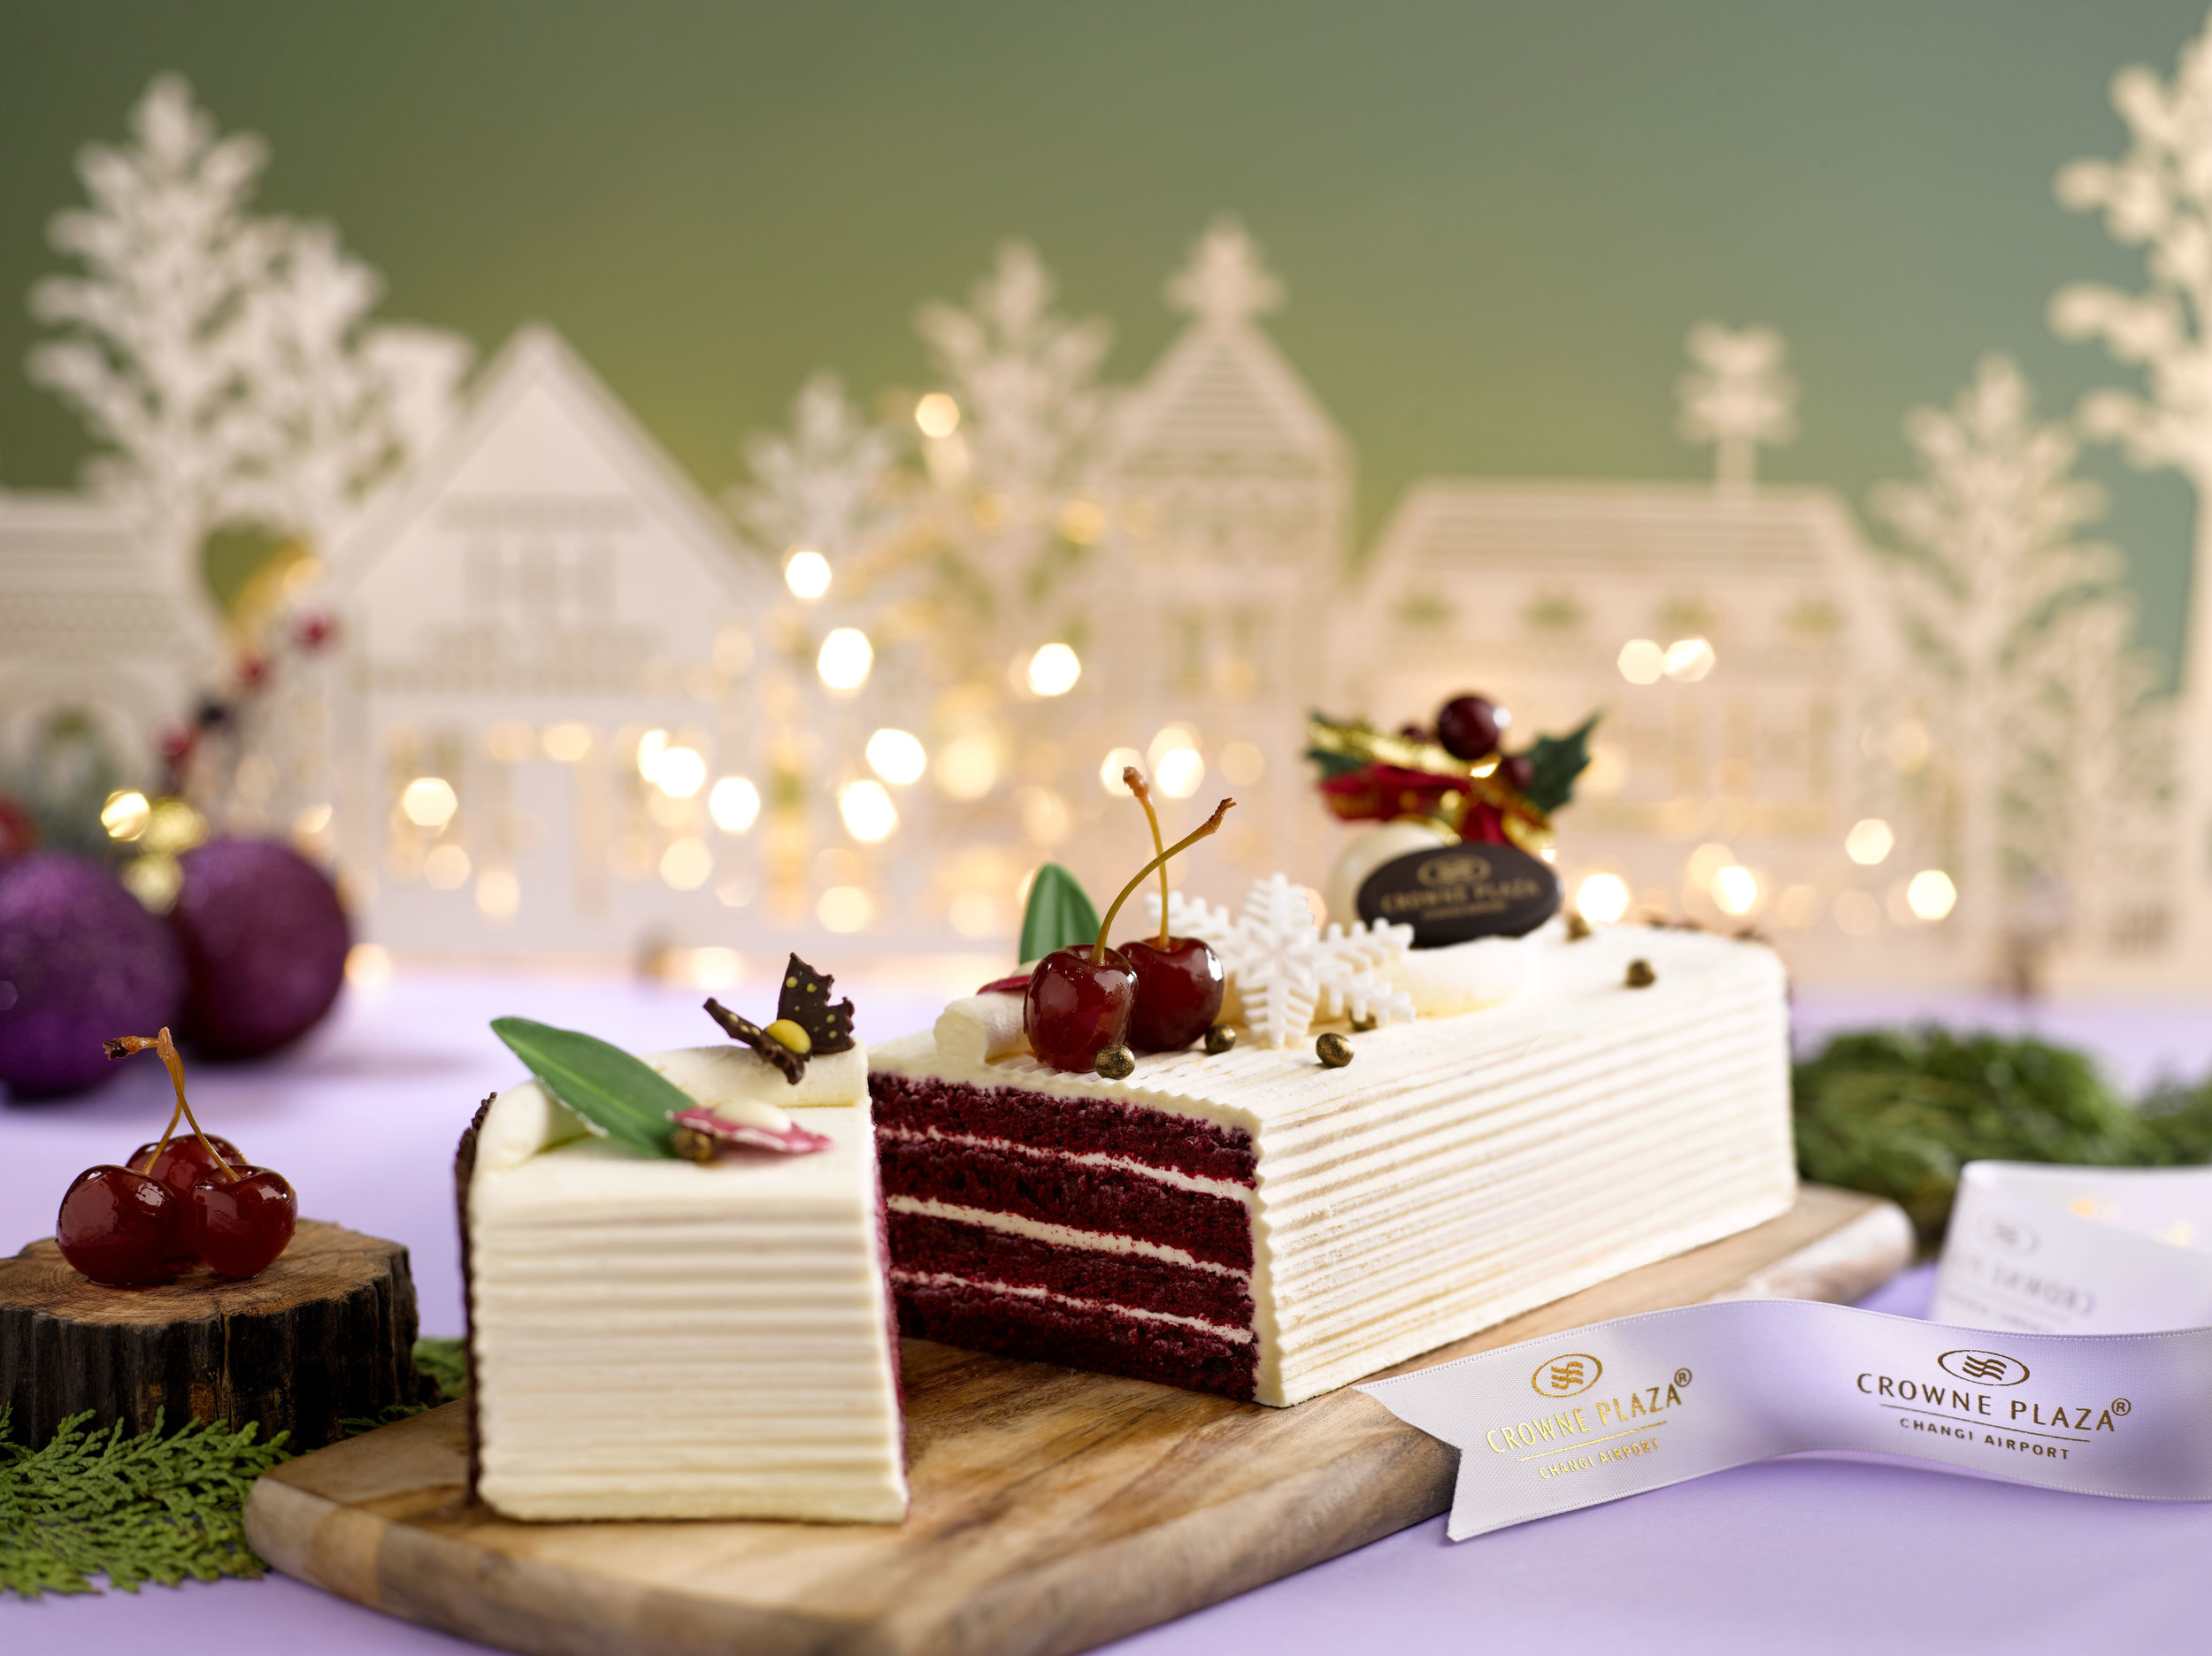 Red Velvet Yule Log with Wild Morello Cherries in Kirsch   Photo Credit: Crowne Plaza Changi Airport